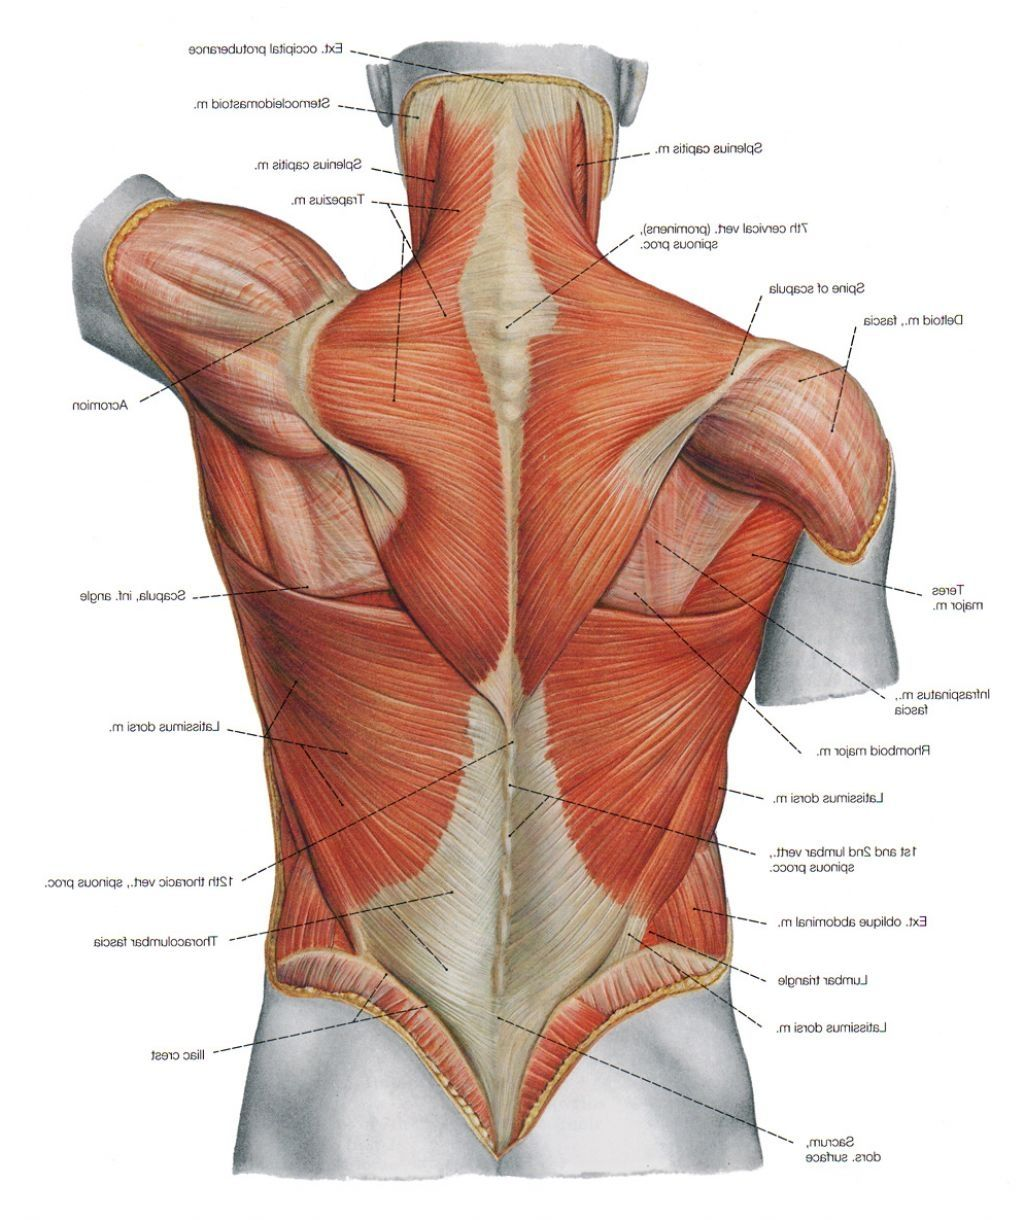 diagram back muscles upper back human anatomy diagram – anatomy, Muscles